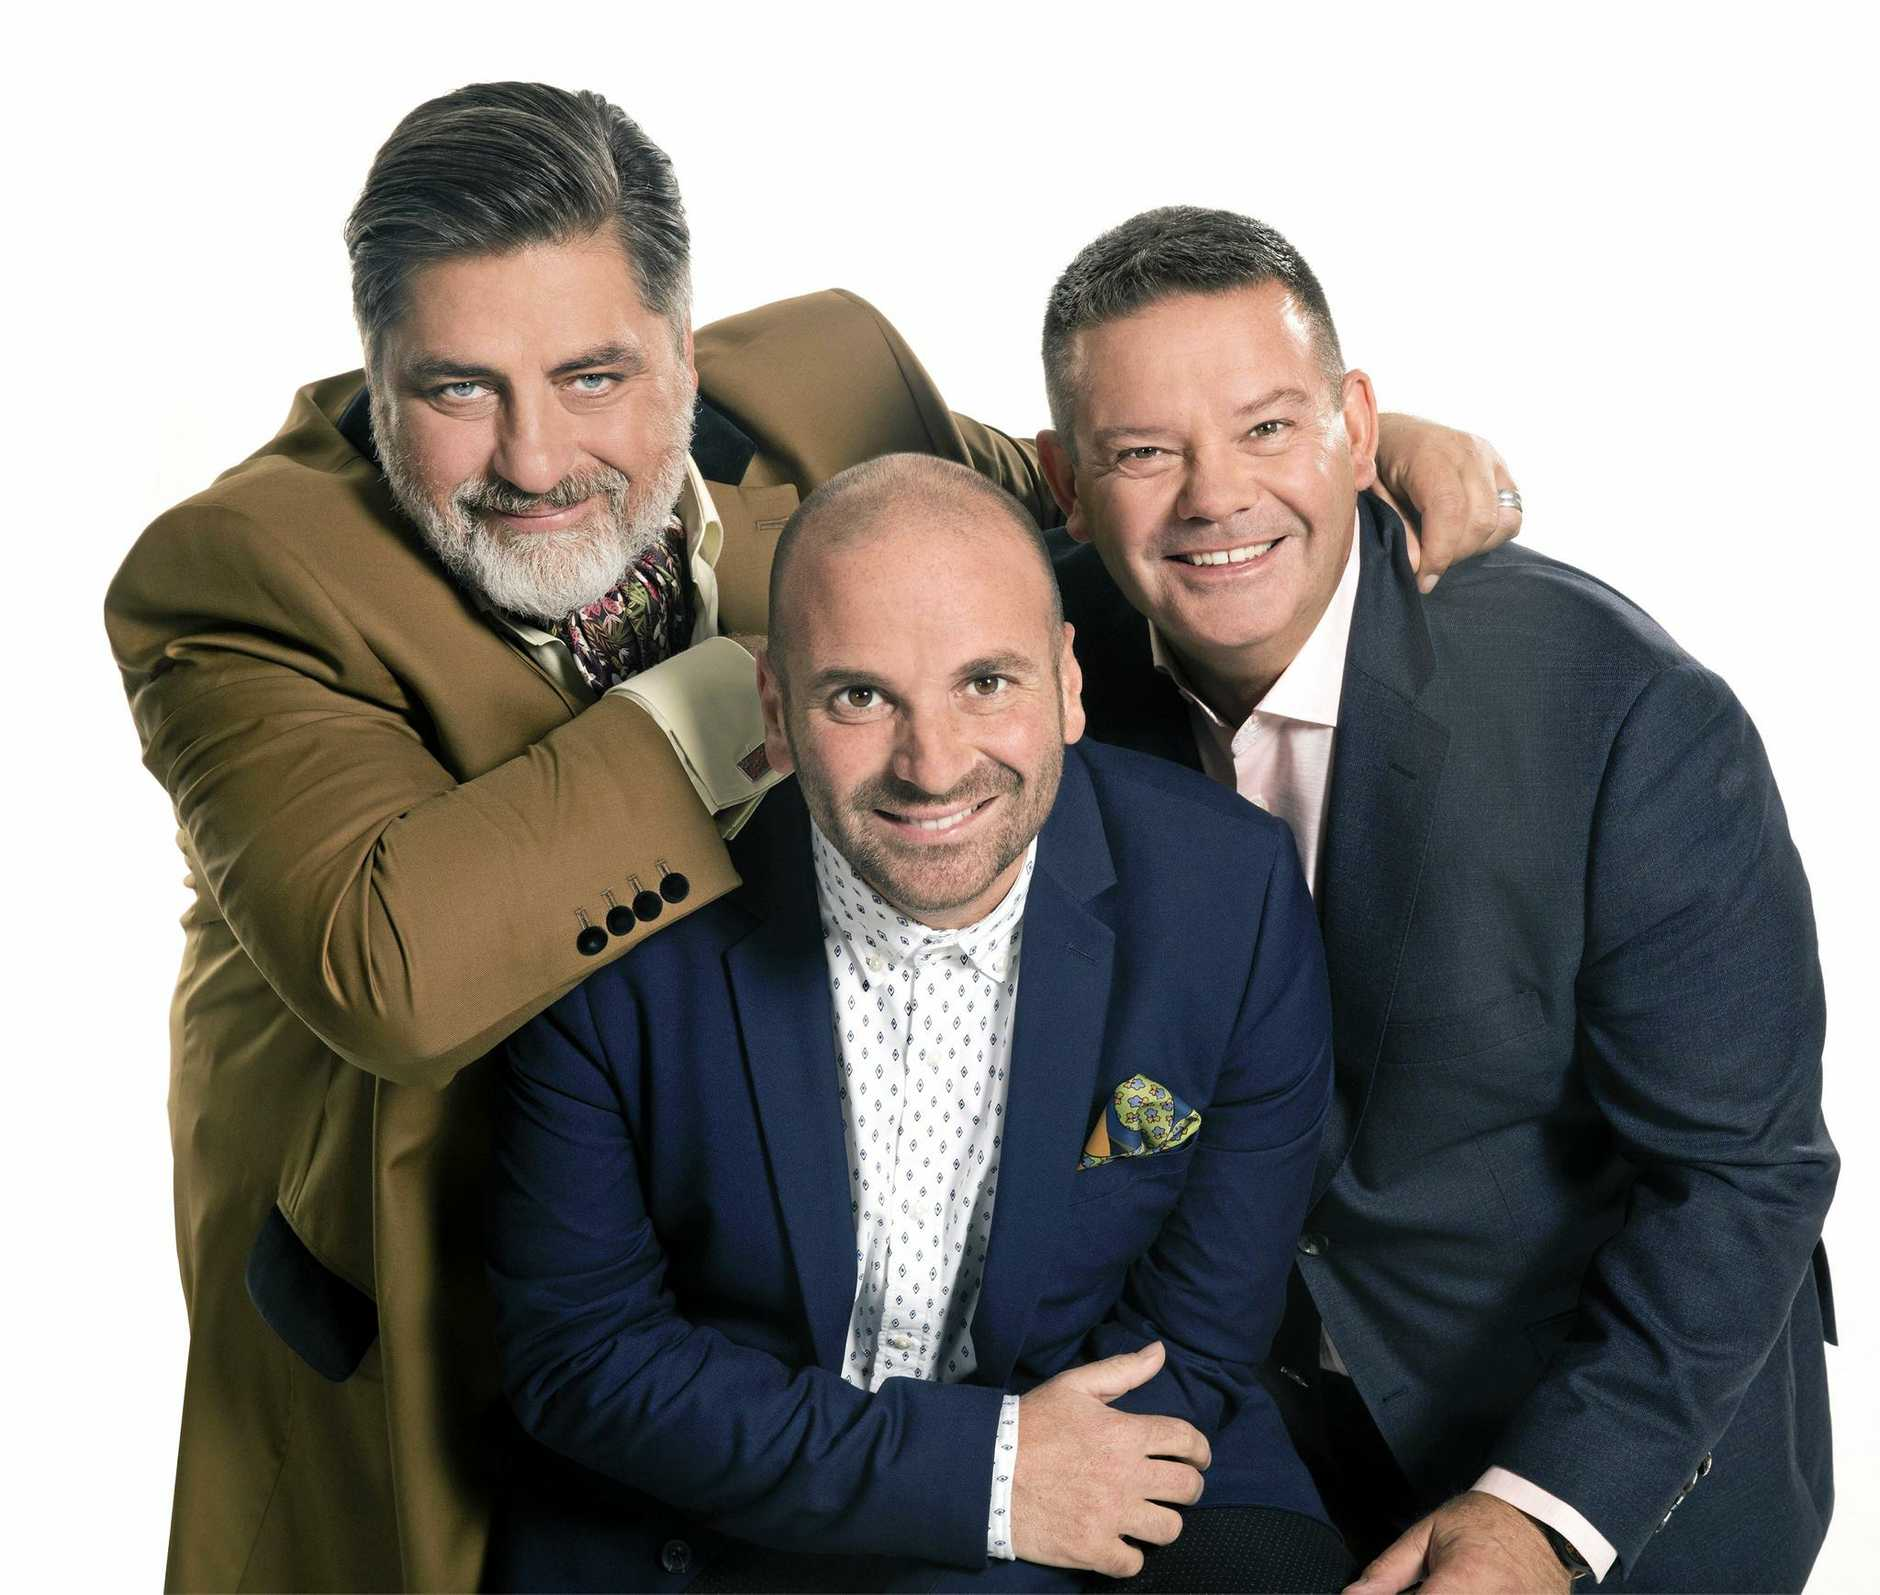 *WARNING EMBARGOED for the April 27 edition of The Guide* MasterChef Australia judges Matt Preston, George Calombaris and Gary Mehigan return for a ninth season. Supplied by Channel 10.